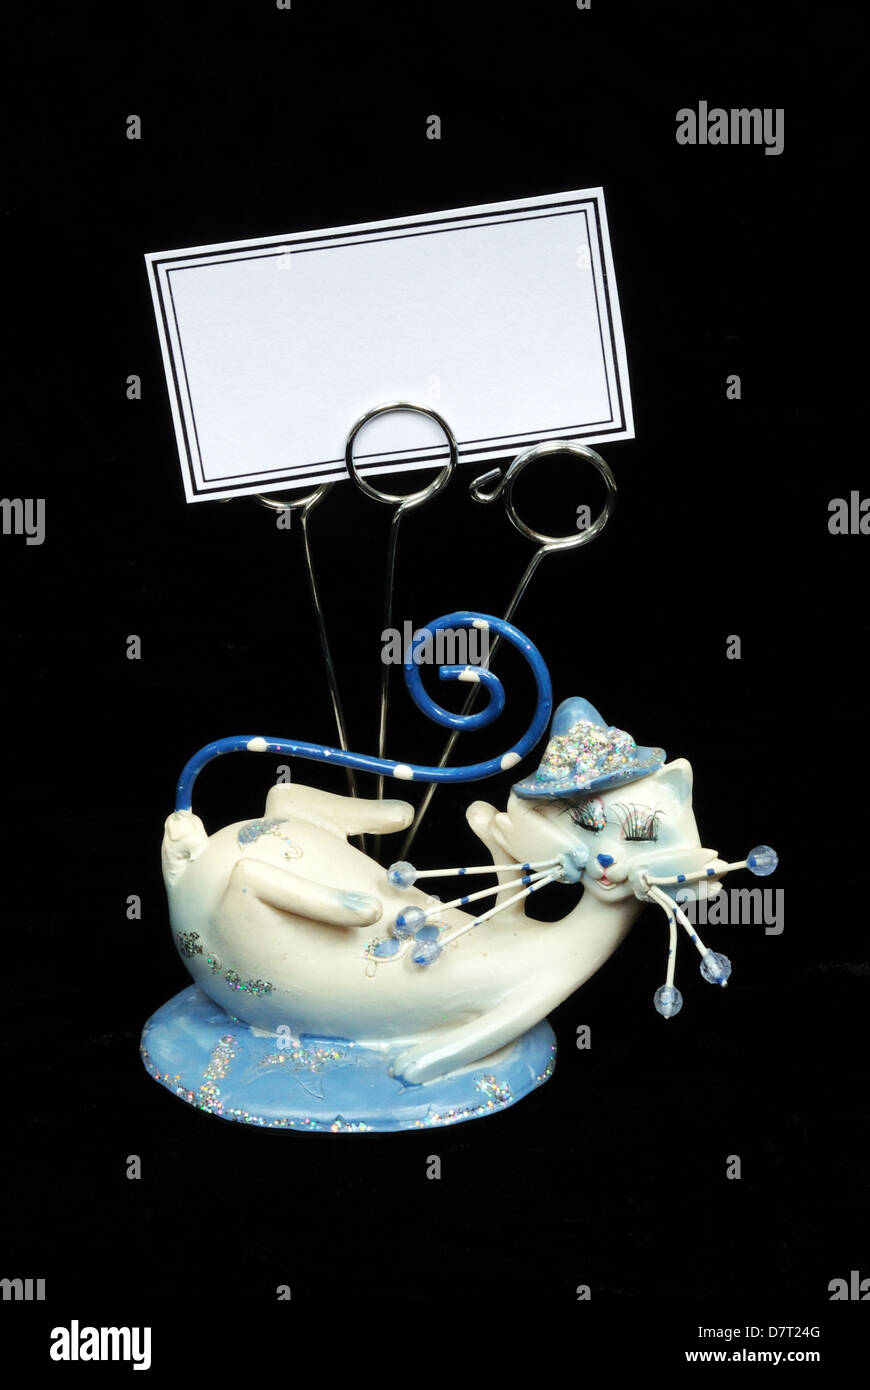 Blue and white cat ornament with business card holders against a ...